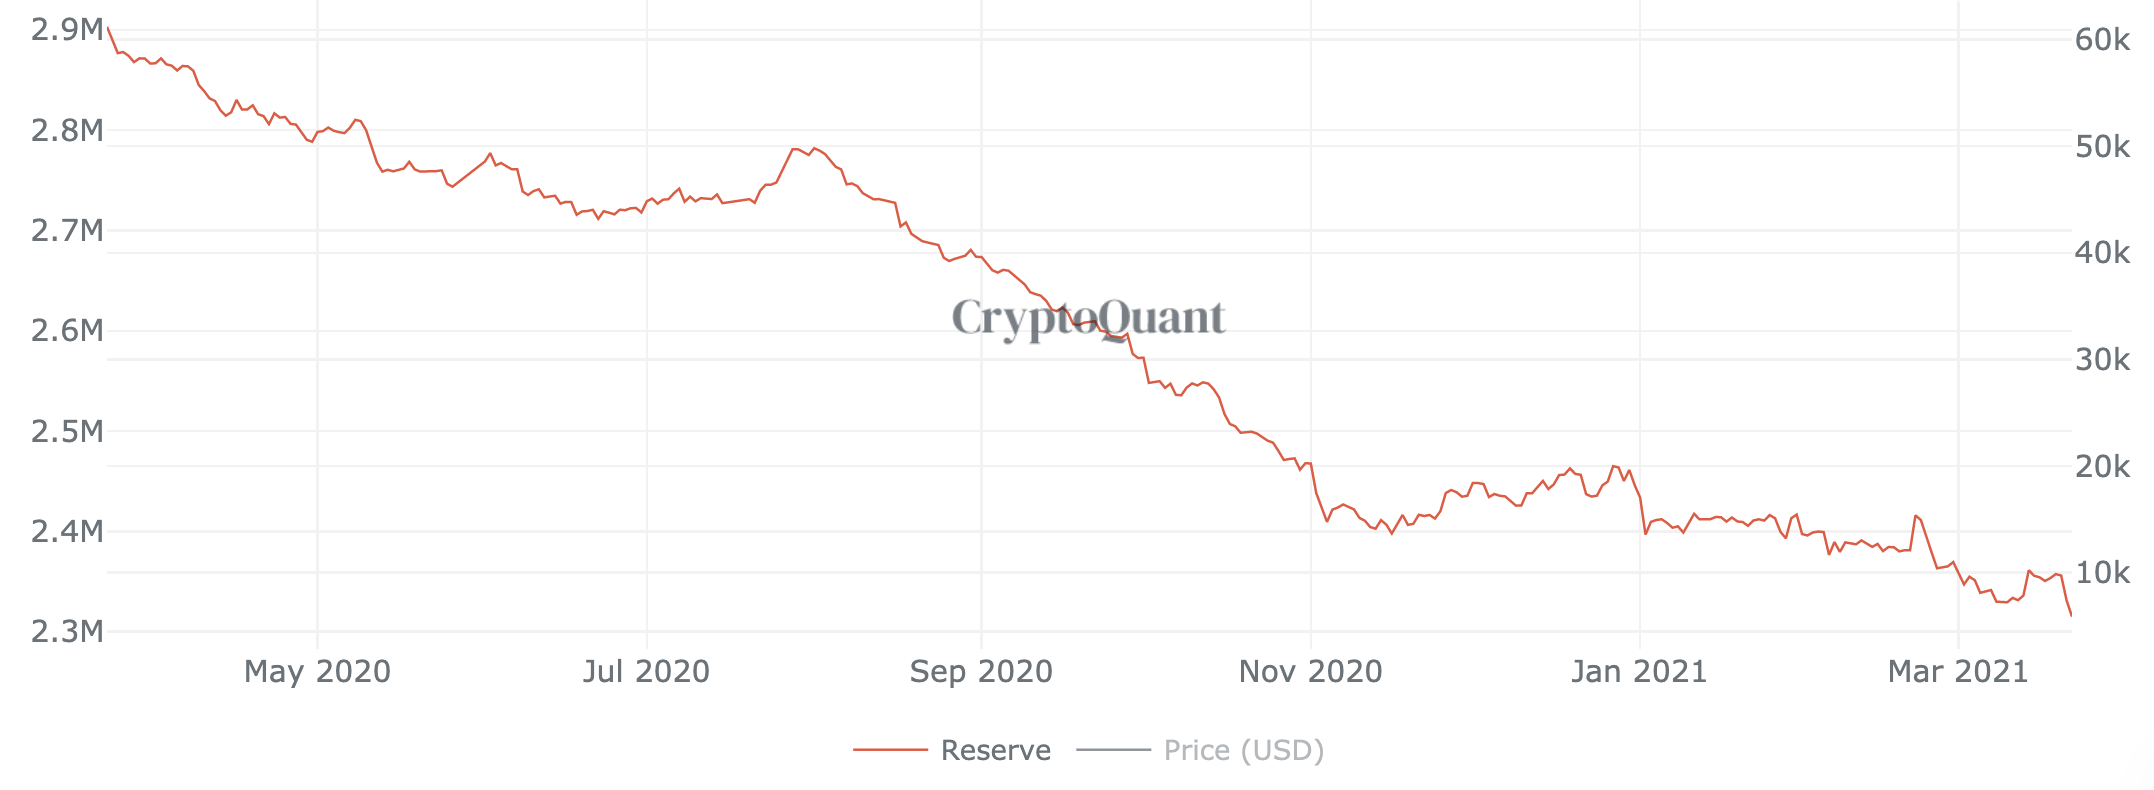 Bitcoin on exchanges, March 2021